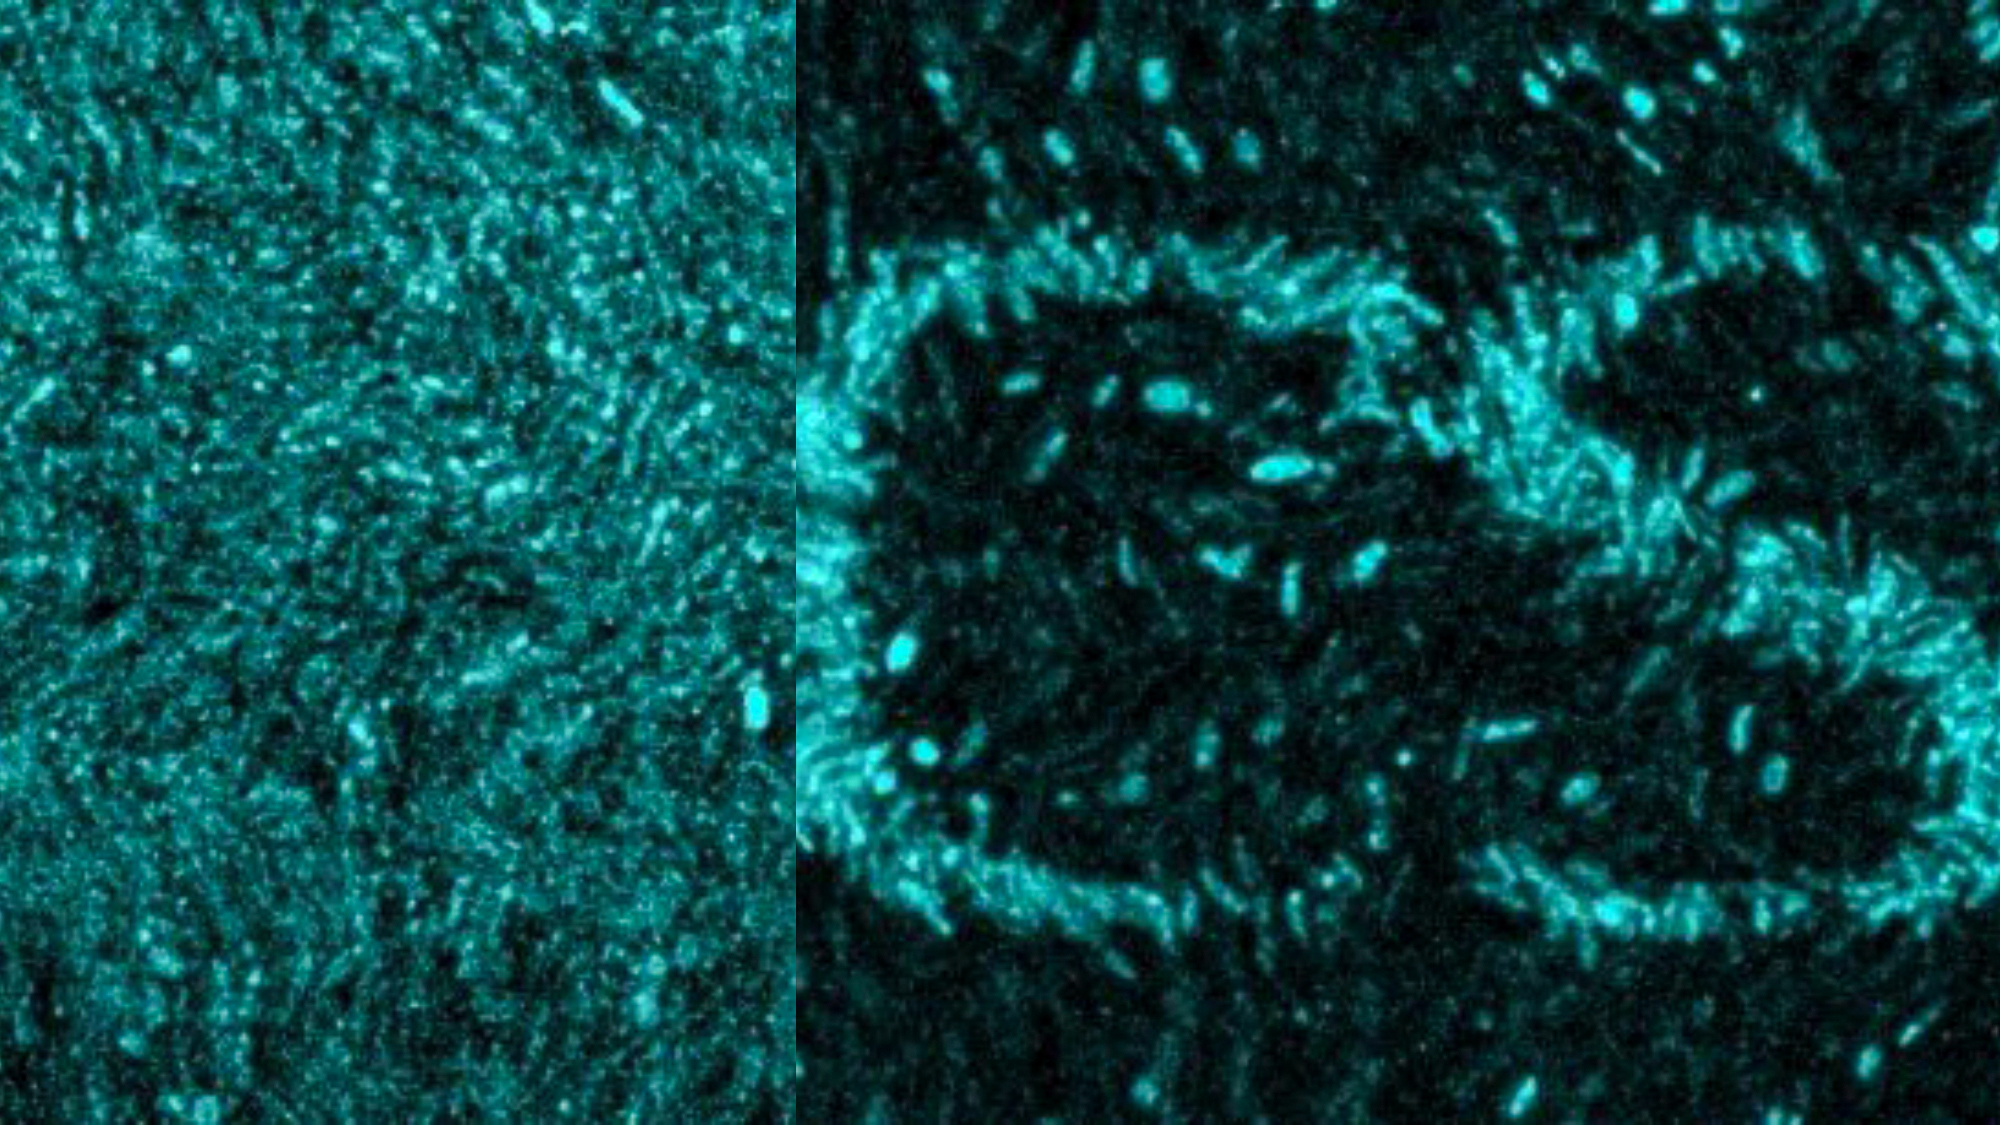 Researchers used light exposure to impress a complex pattern, spread across an area slightly smaller than the thickness of a human hair, onto a biofilm community, made up of hundreds of individual bacteria. | Picture by the UPF and UCSD.